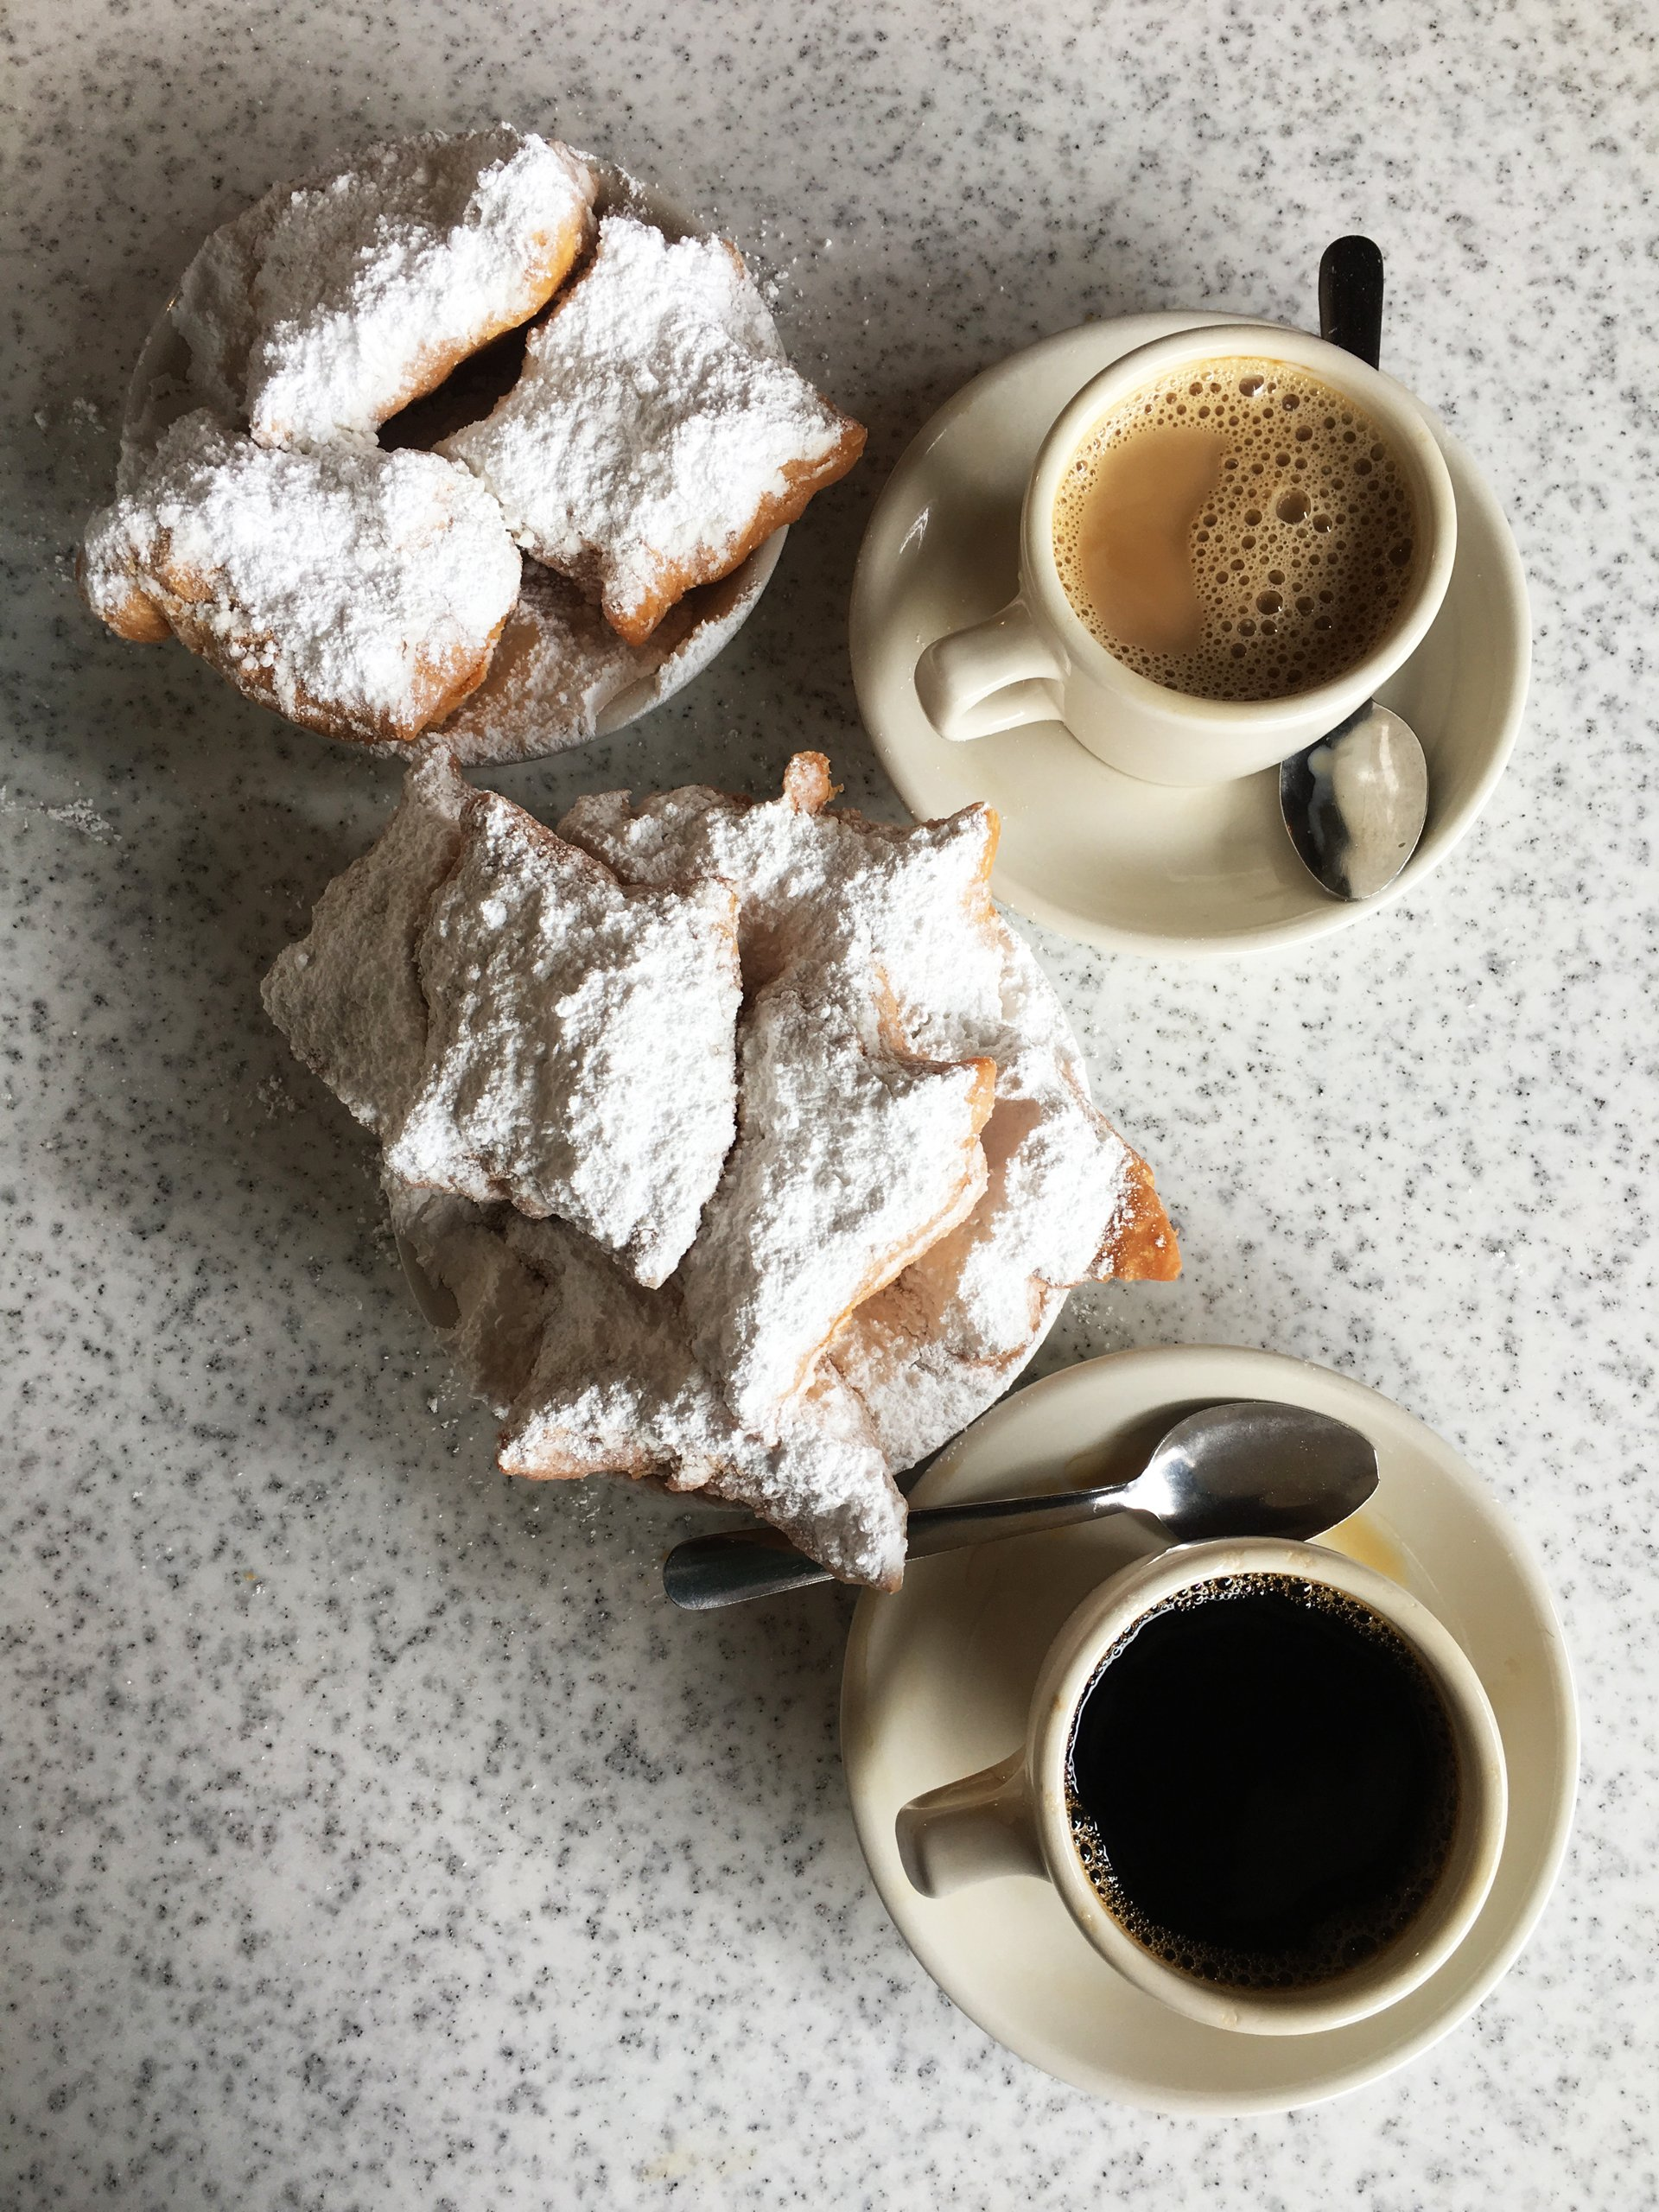 New Orleans Food Guide | HonestlyYUM (honestlyyum.com)